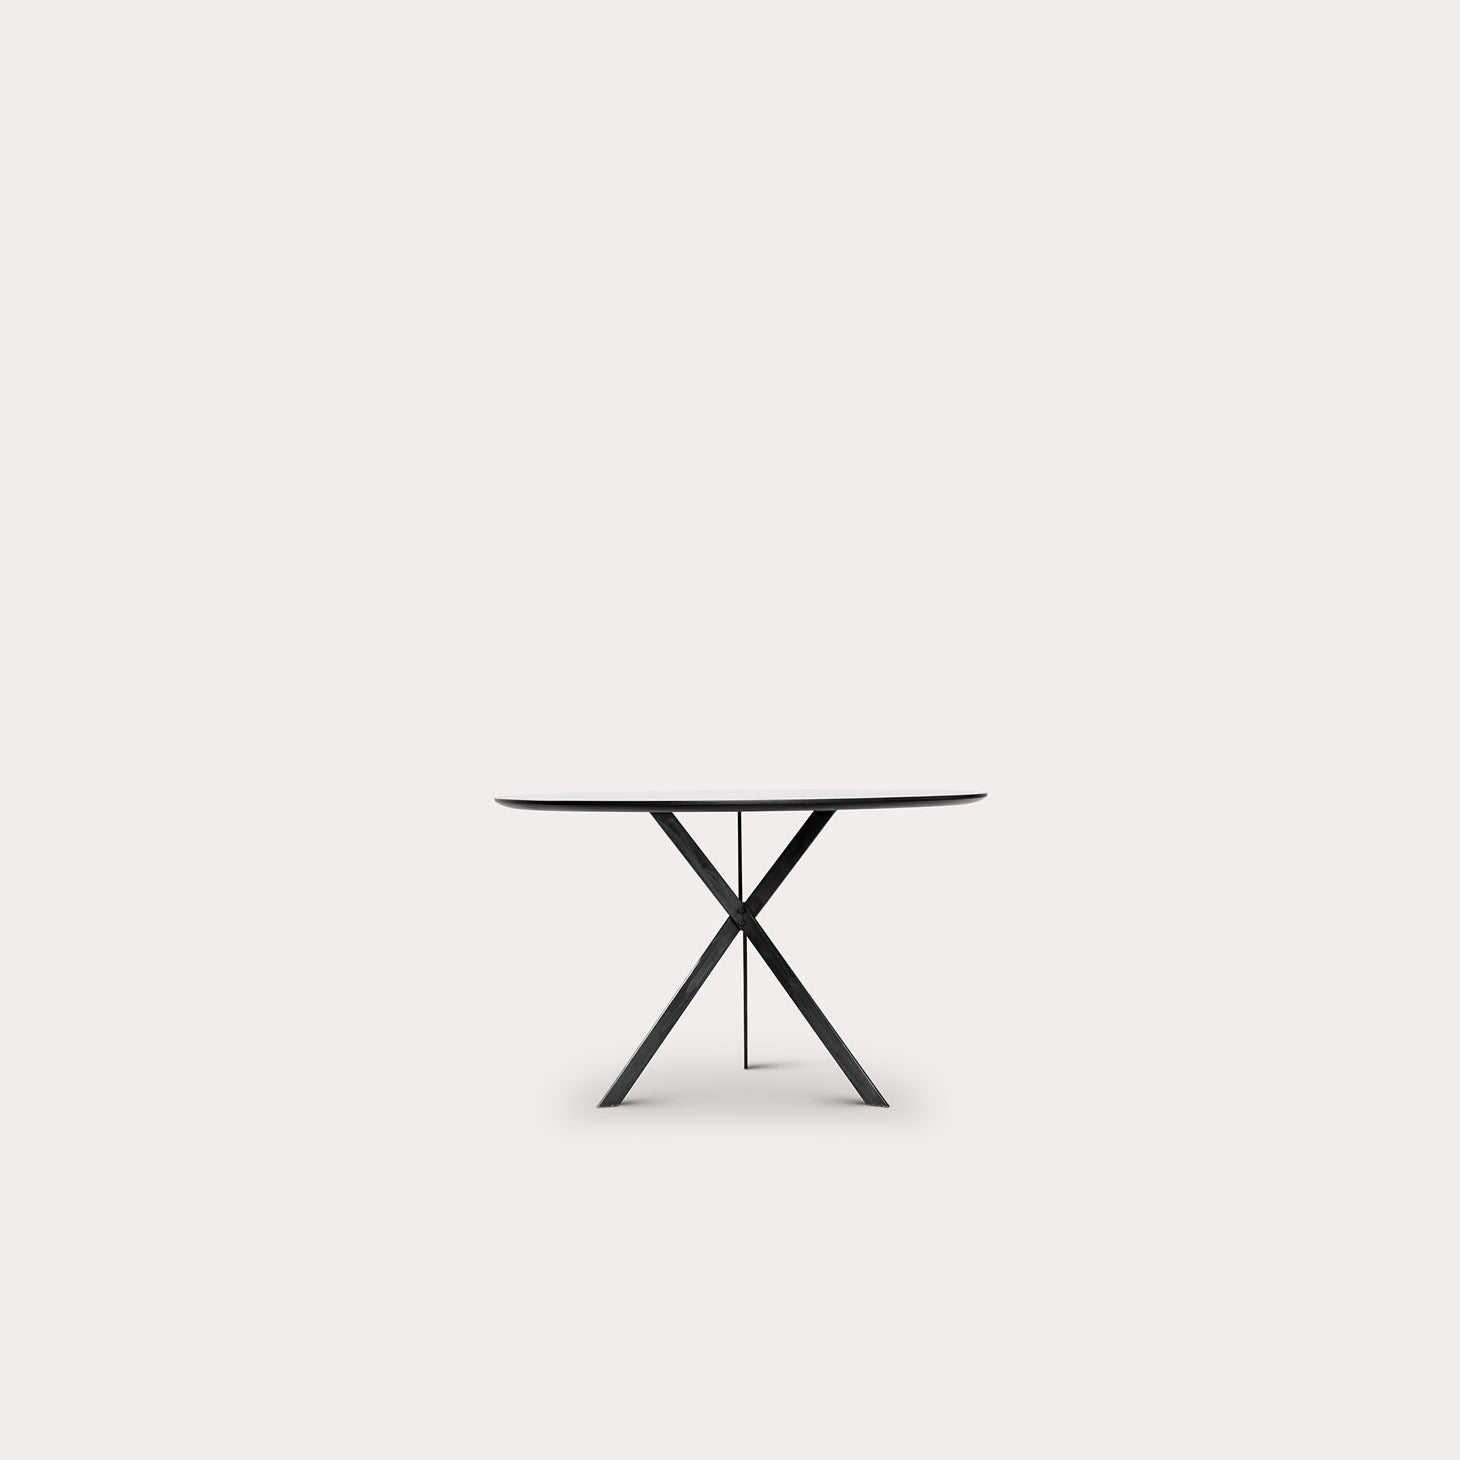 ILE Tables Christophe Delcourt Designer Furniture Sku: 008-230-10274